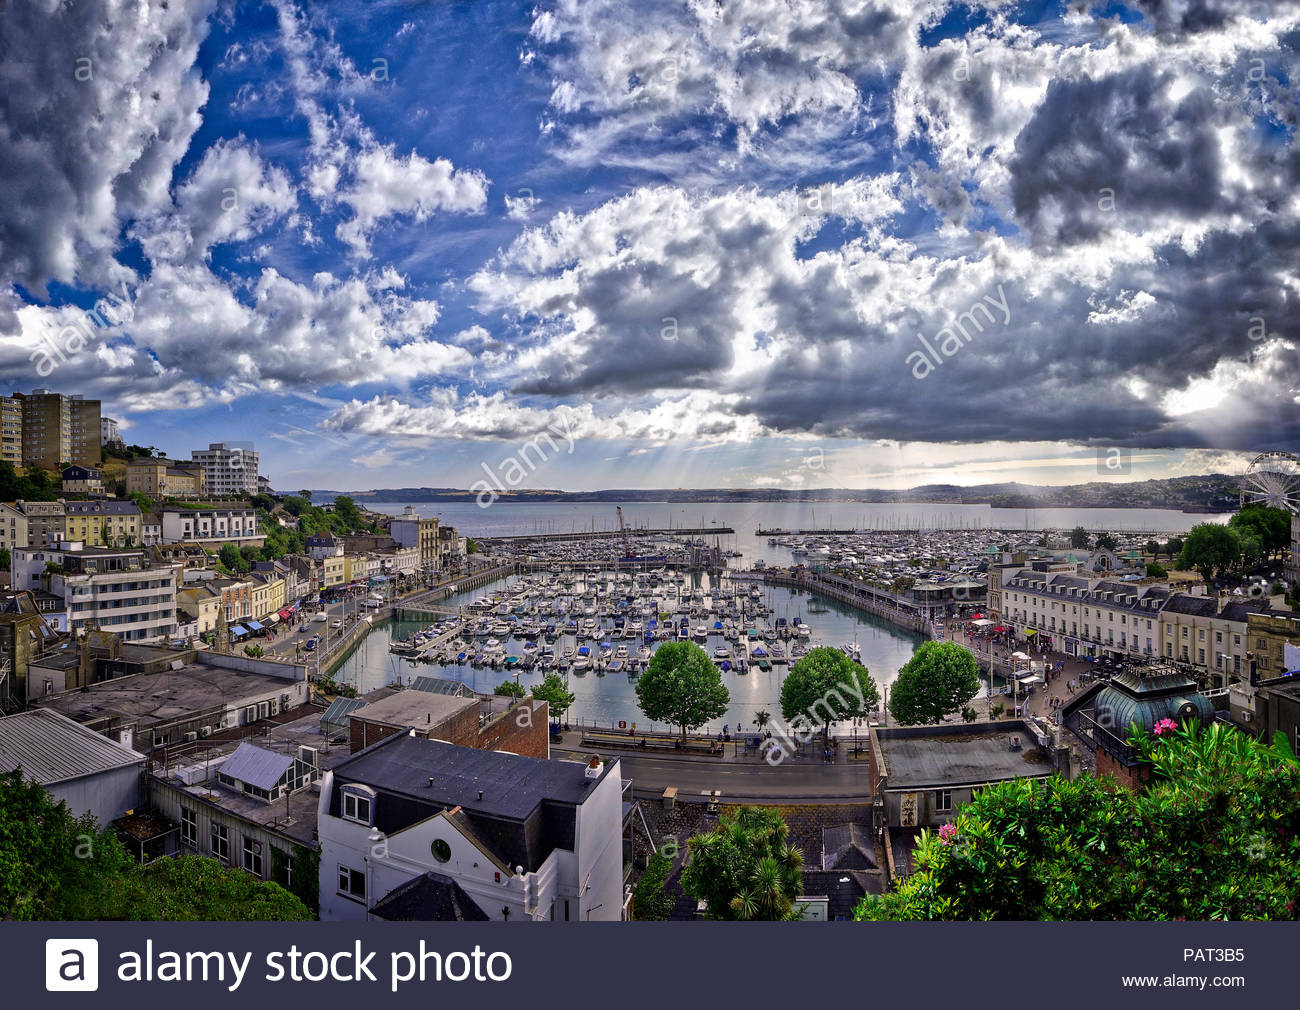 GB - DEVON: Torquay harbour and town (HDR Image) - Stock Image